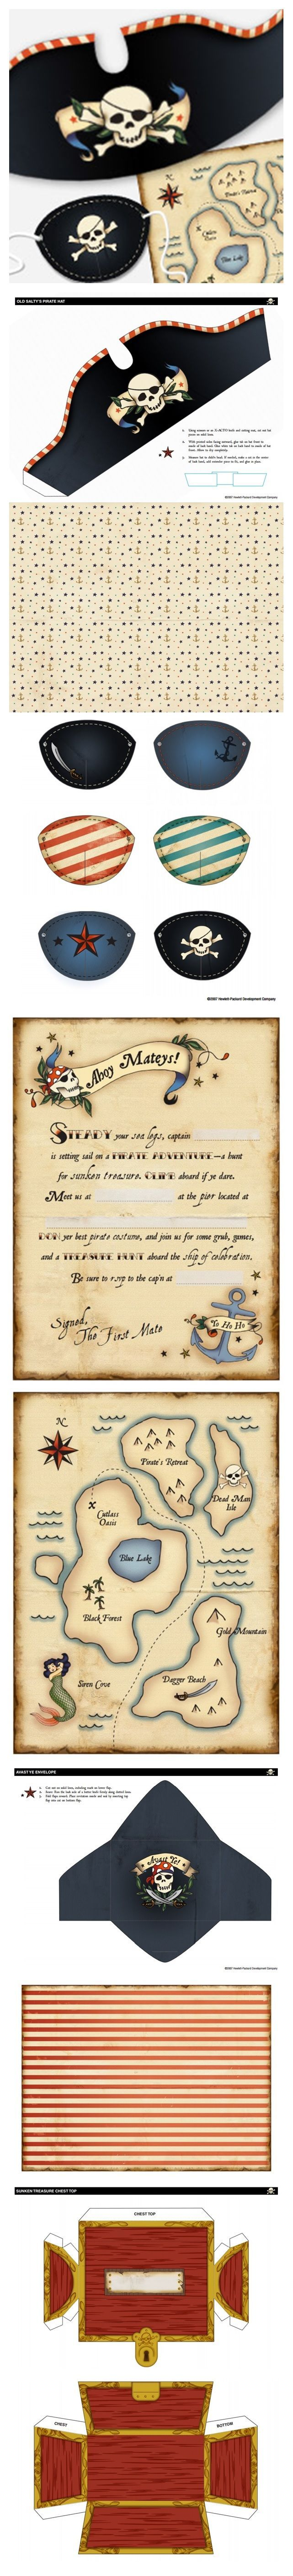 complete printable party decorations and ideas!!: